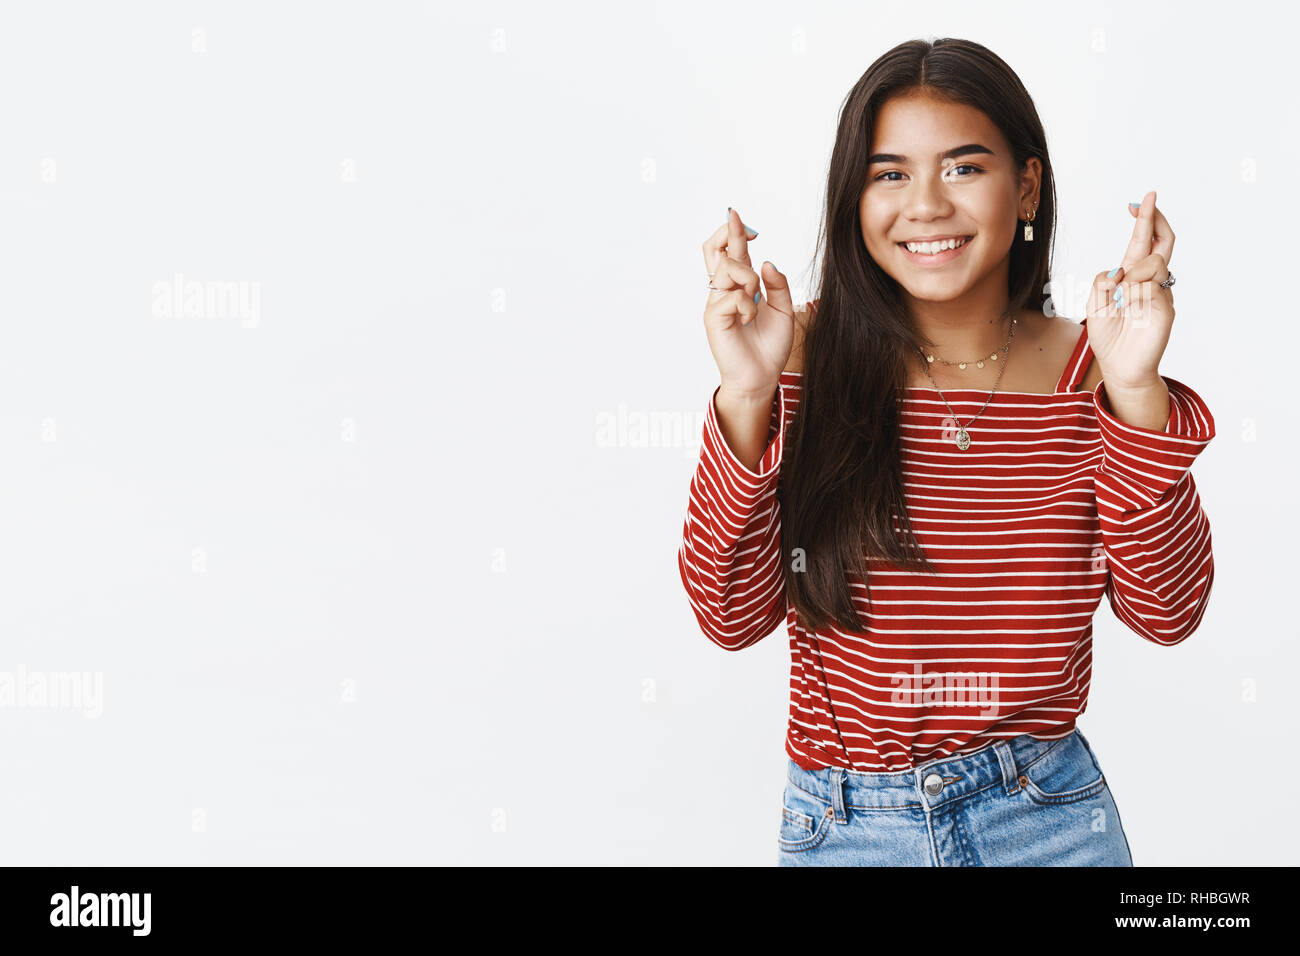 Charming hopeful and optimistic young woman believe dream come true crossing fingers for good luck and smiling positive at camera making wish - Stock Image